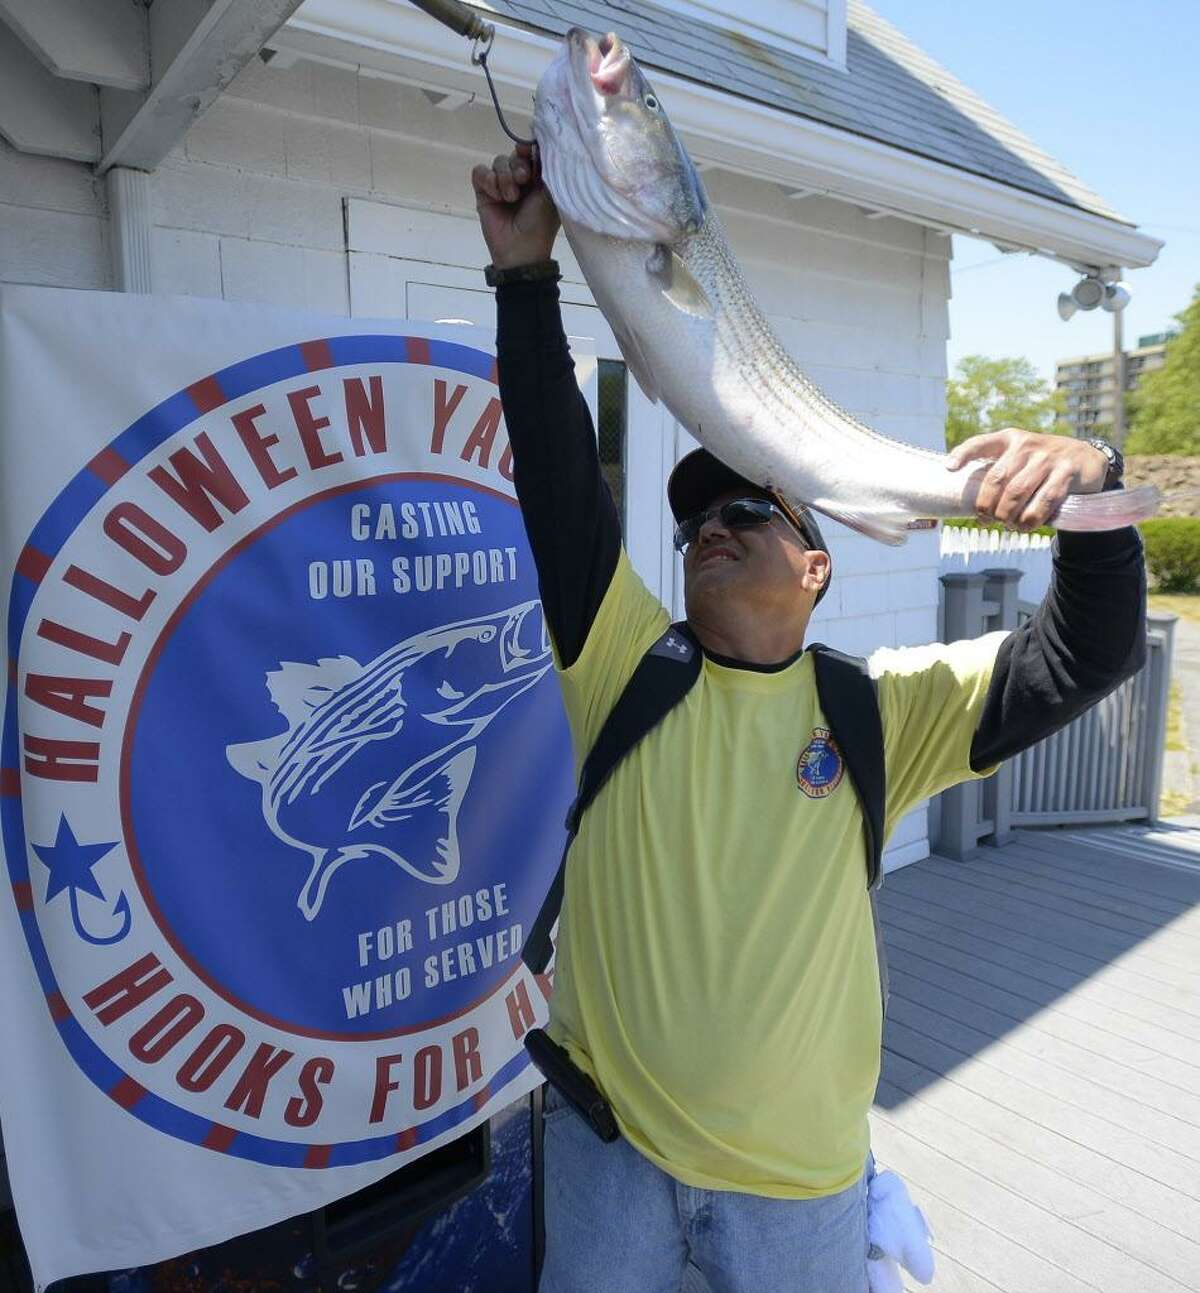 FILE - Newly retired, after 38 years of service, U.S. Army Staff Sergeant Steven Betancourt, who served in combat and was wounded in the Iraq war, weighs in a 14 lbs Striped Bass during the Hooks for Heroes Charity Fishing Tournament at the Halloween Yacht Club in Stamford, Conn. on Saturday, June 25, 2016.